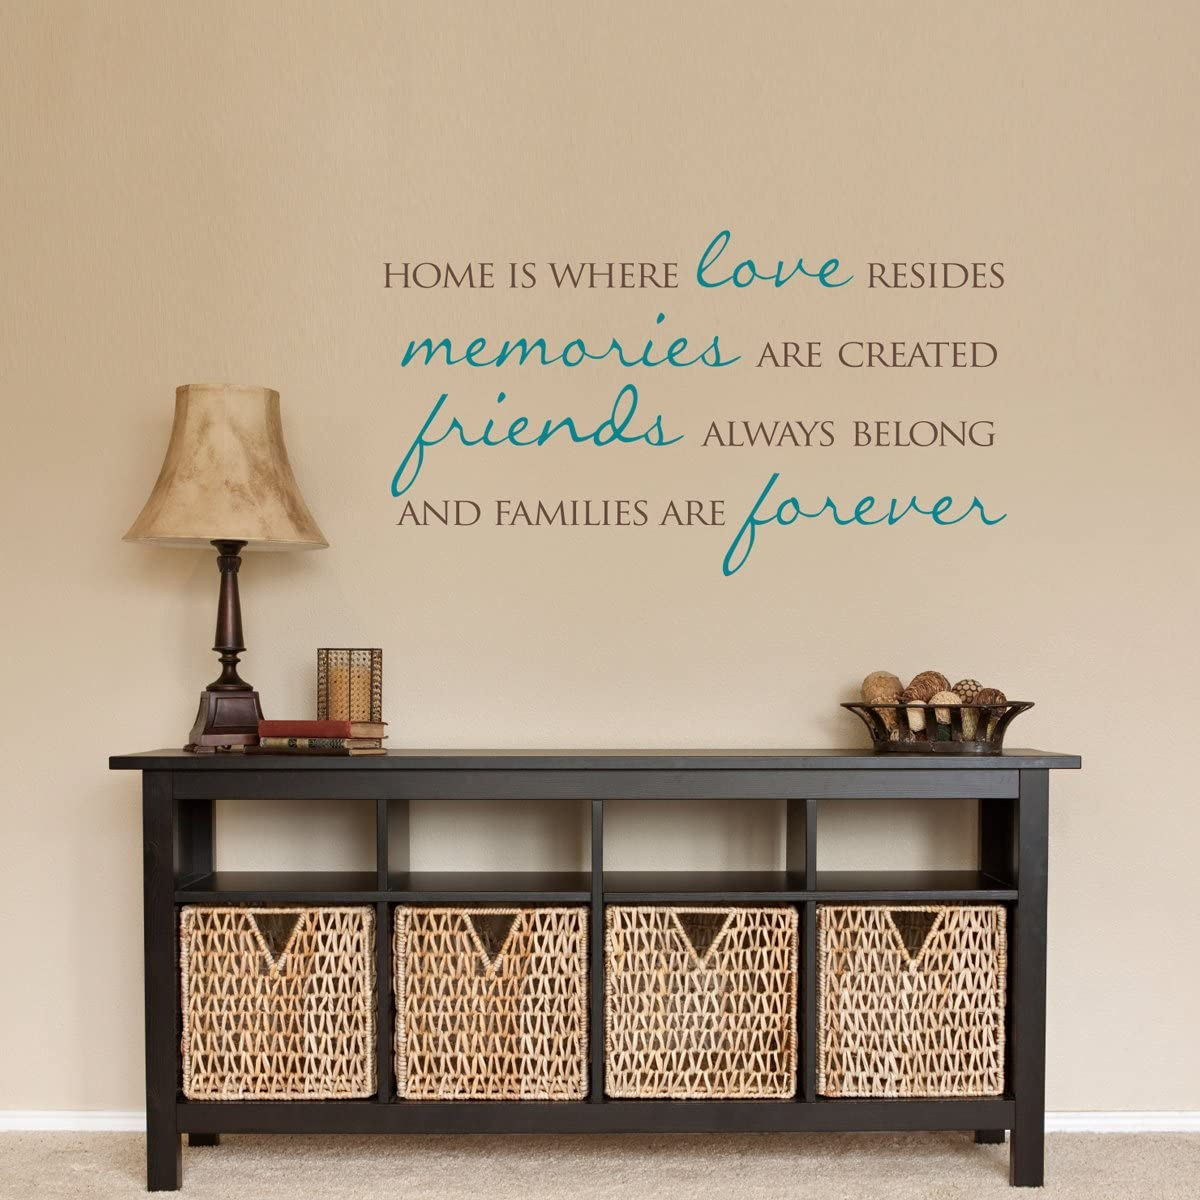 Tamengi Home Wall Decal Home is Where Love Resides Families are Forever Quote Wall Sticker 30inch